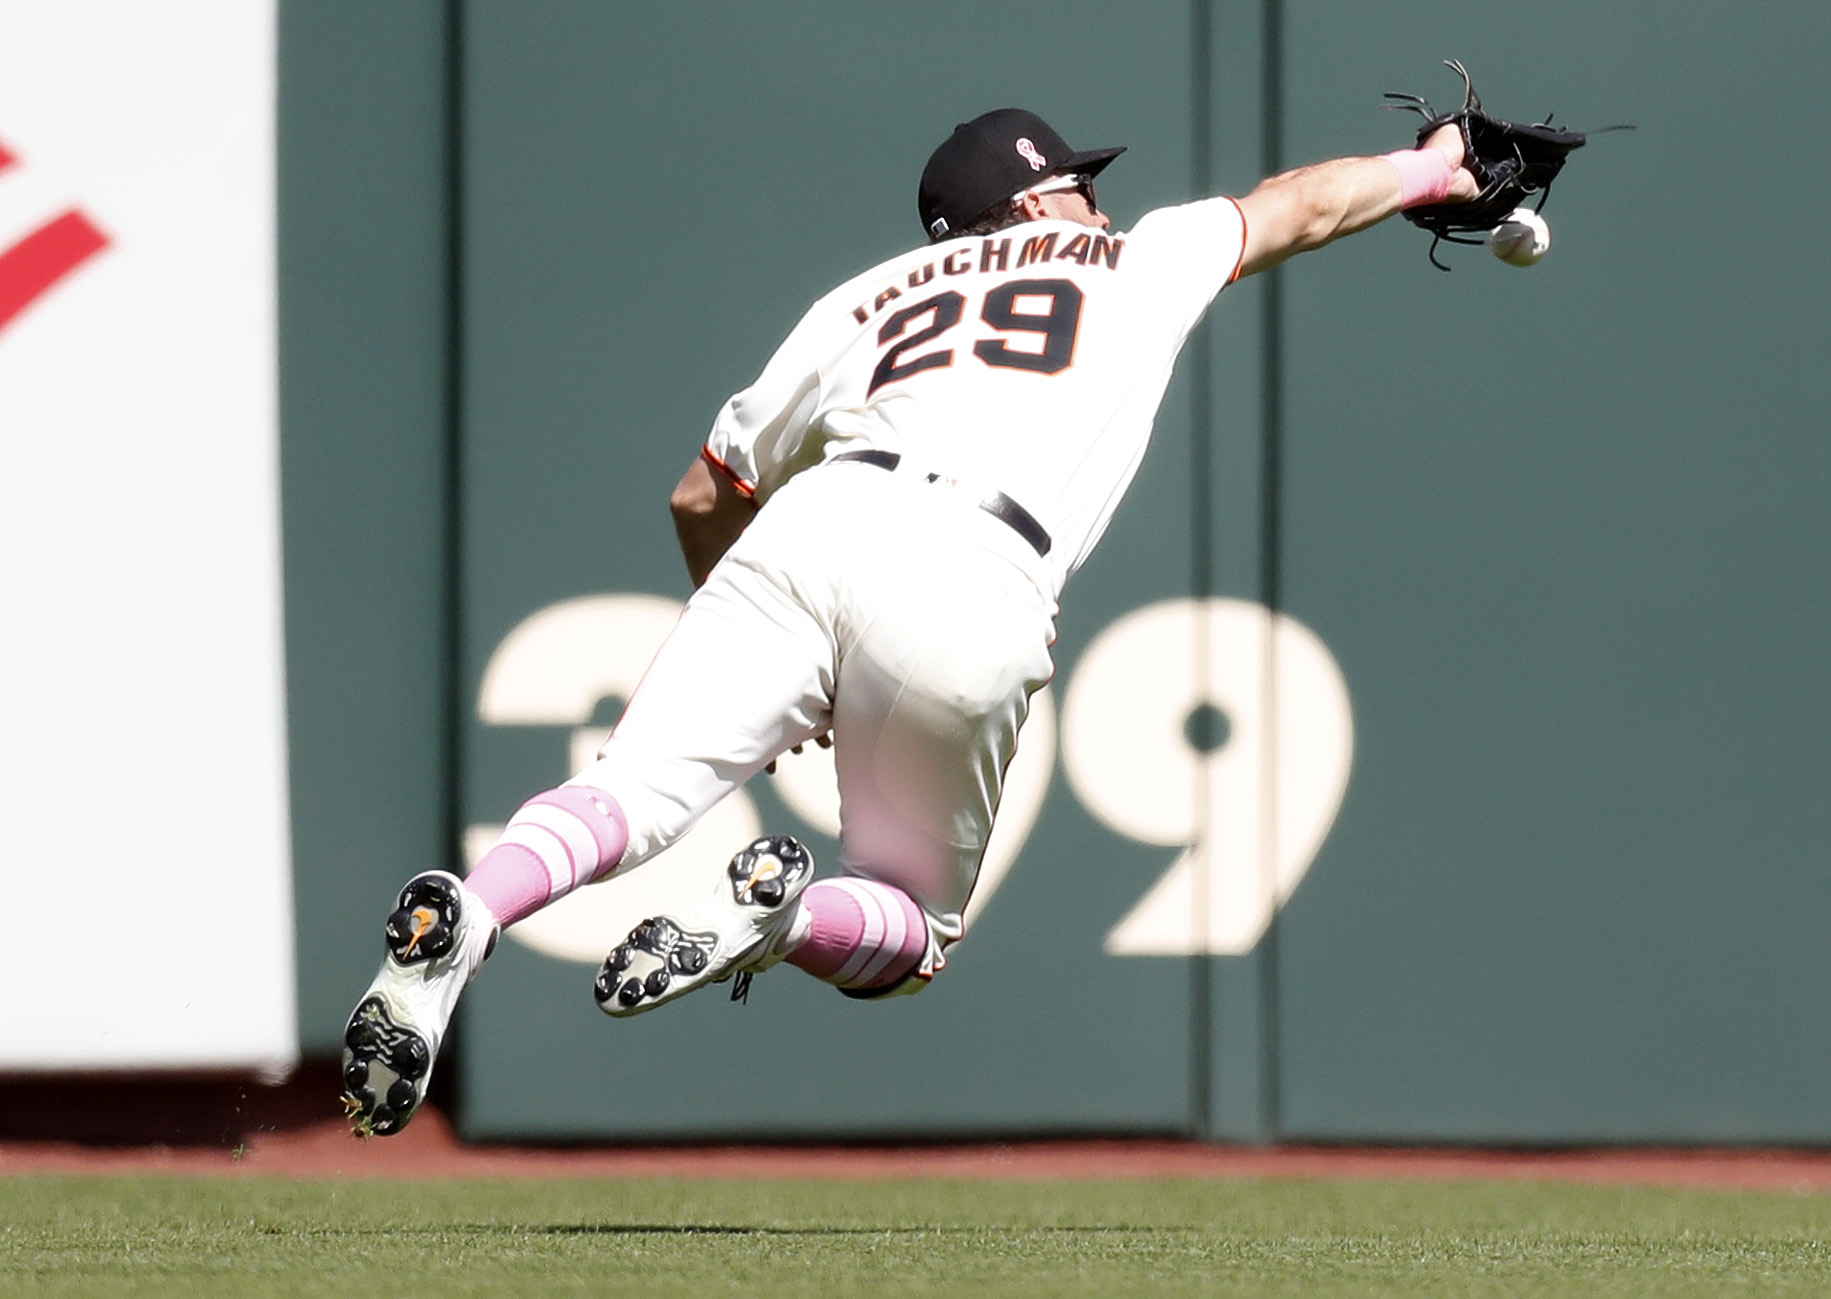 Giants miss series sweep against Padres as Cueto is roughed up